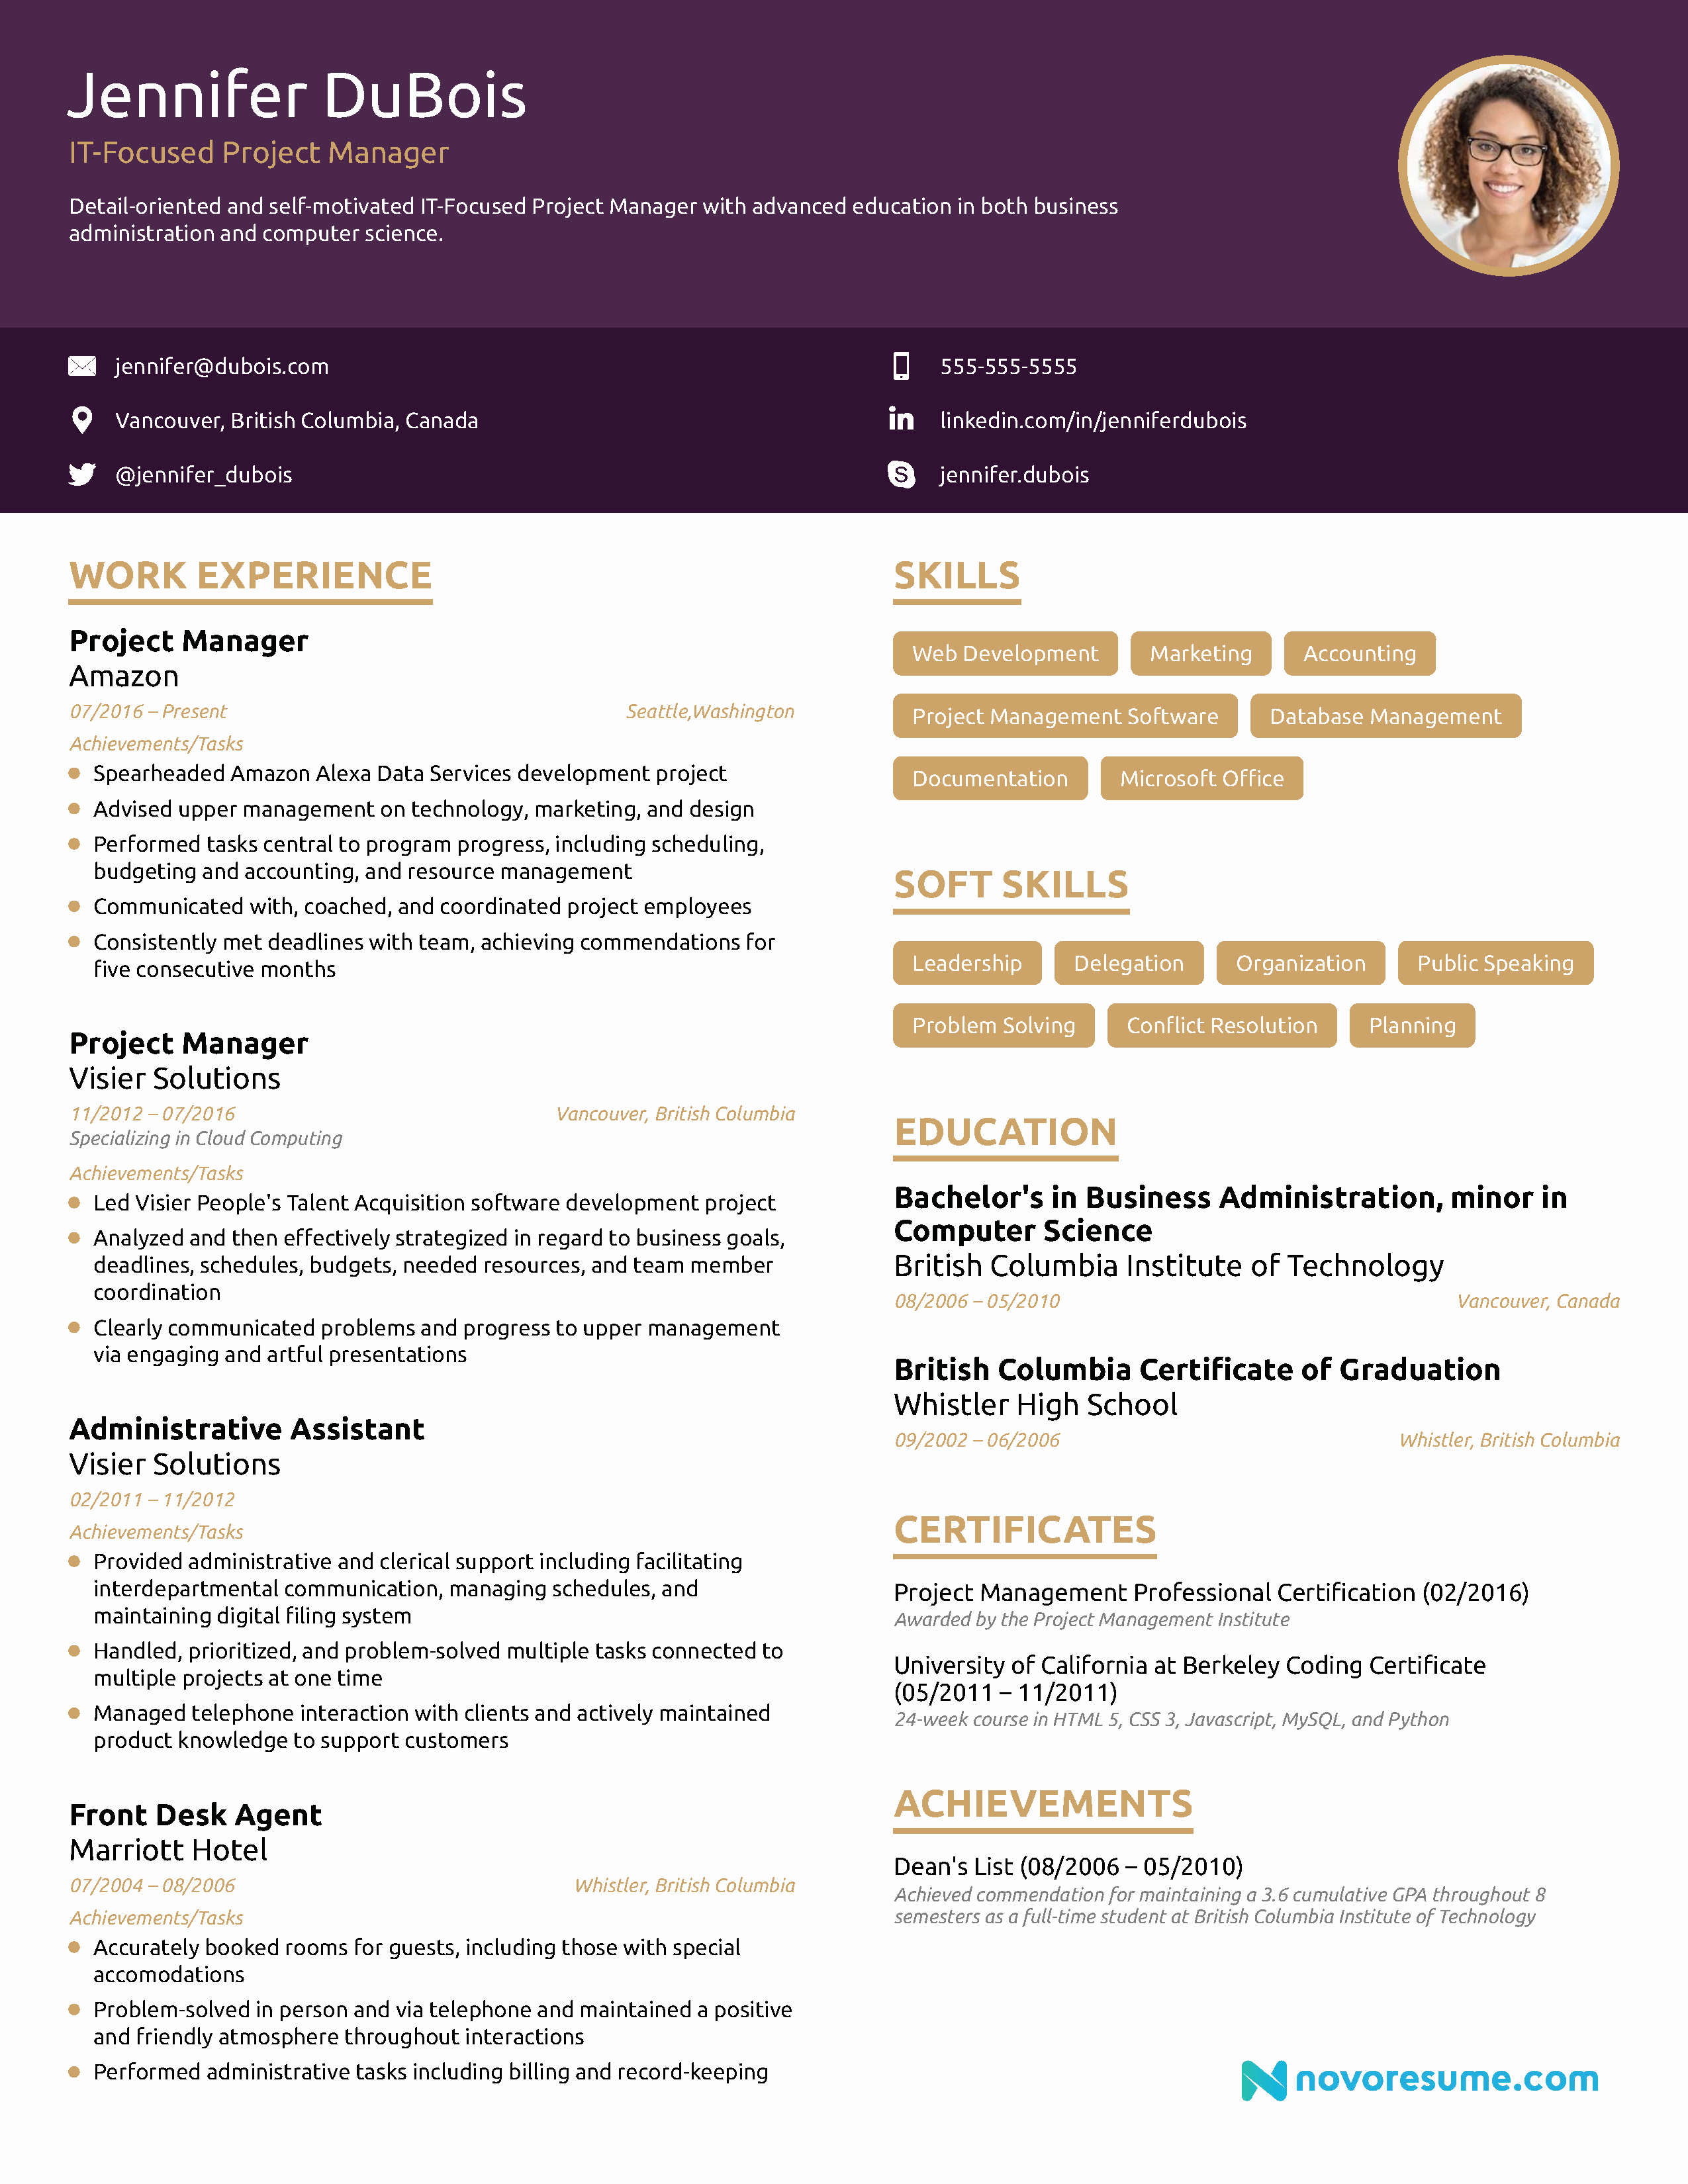 Project Manager Resume Template Beautiful Project Manager Resume [2019] Example & Full Guide